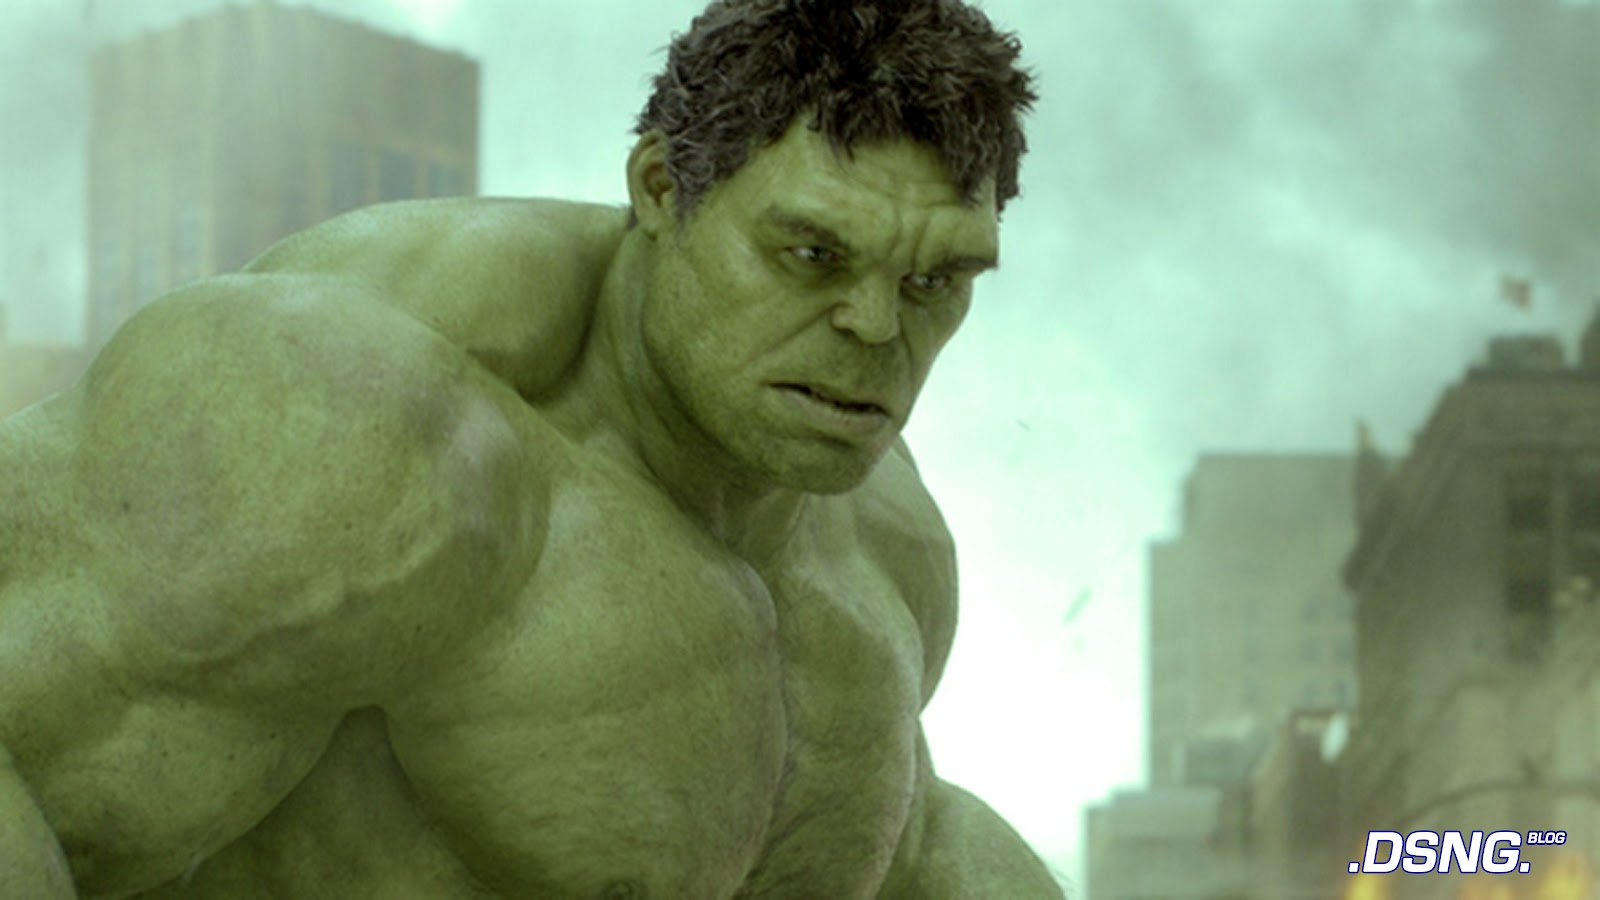 Gallery for the hulk avengers 2012 displaying 12 images for the hulk